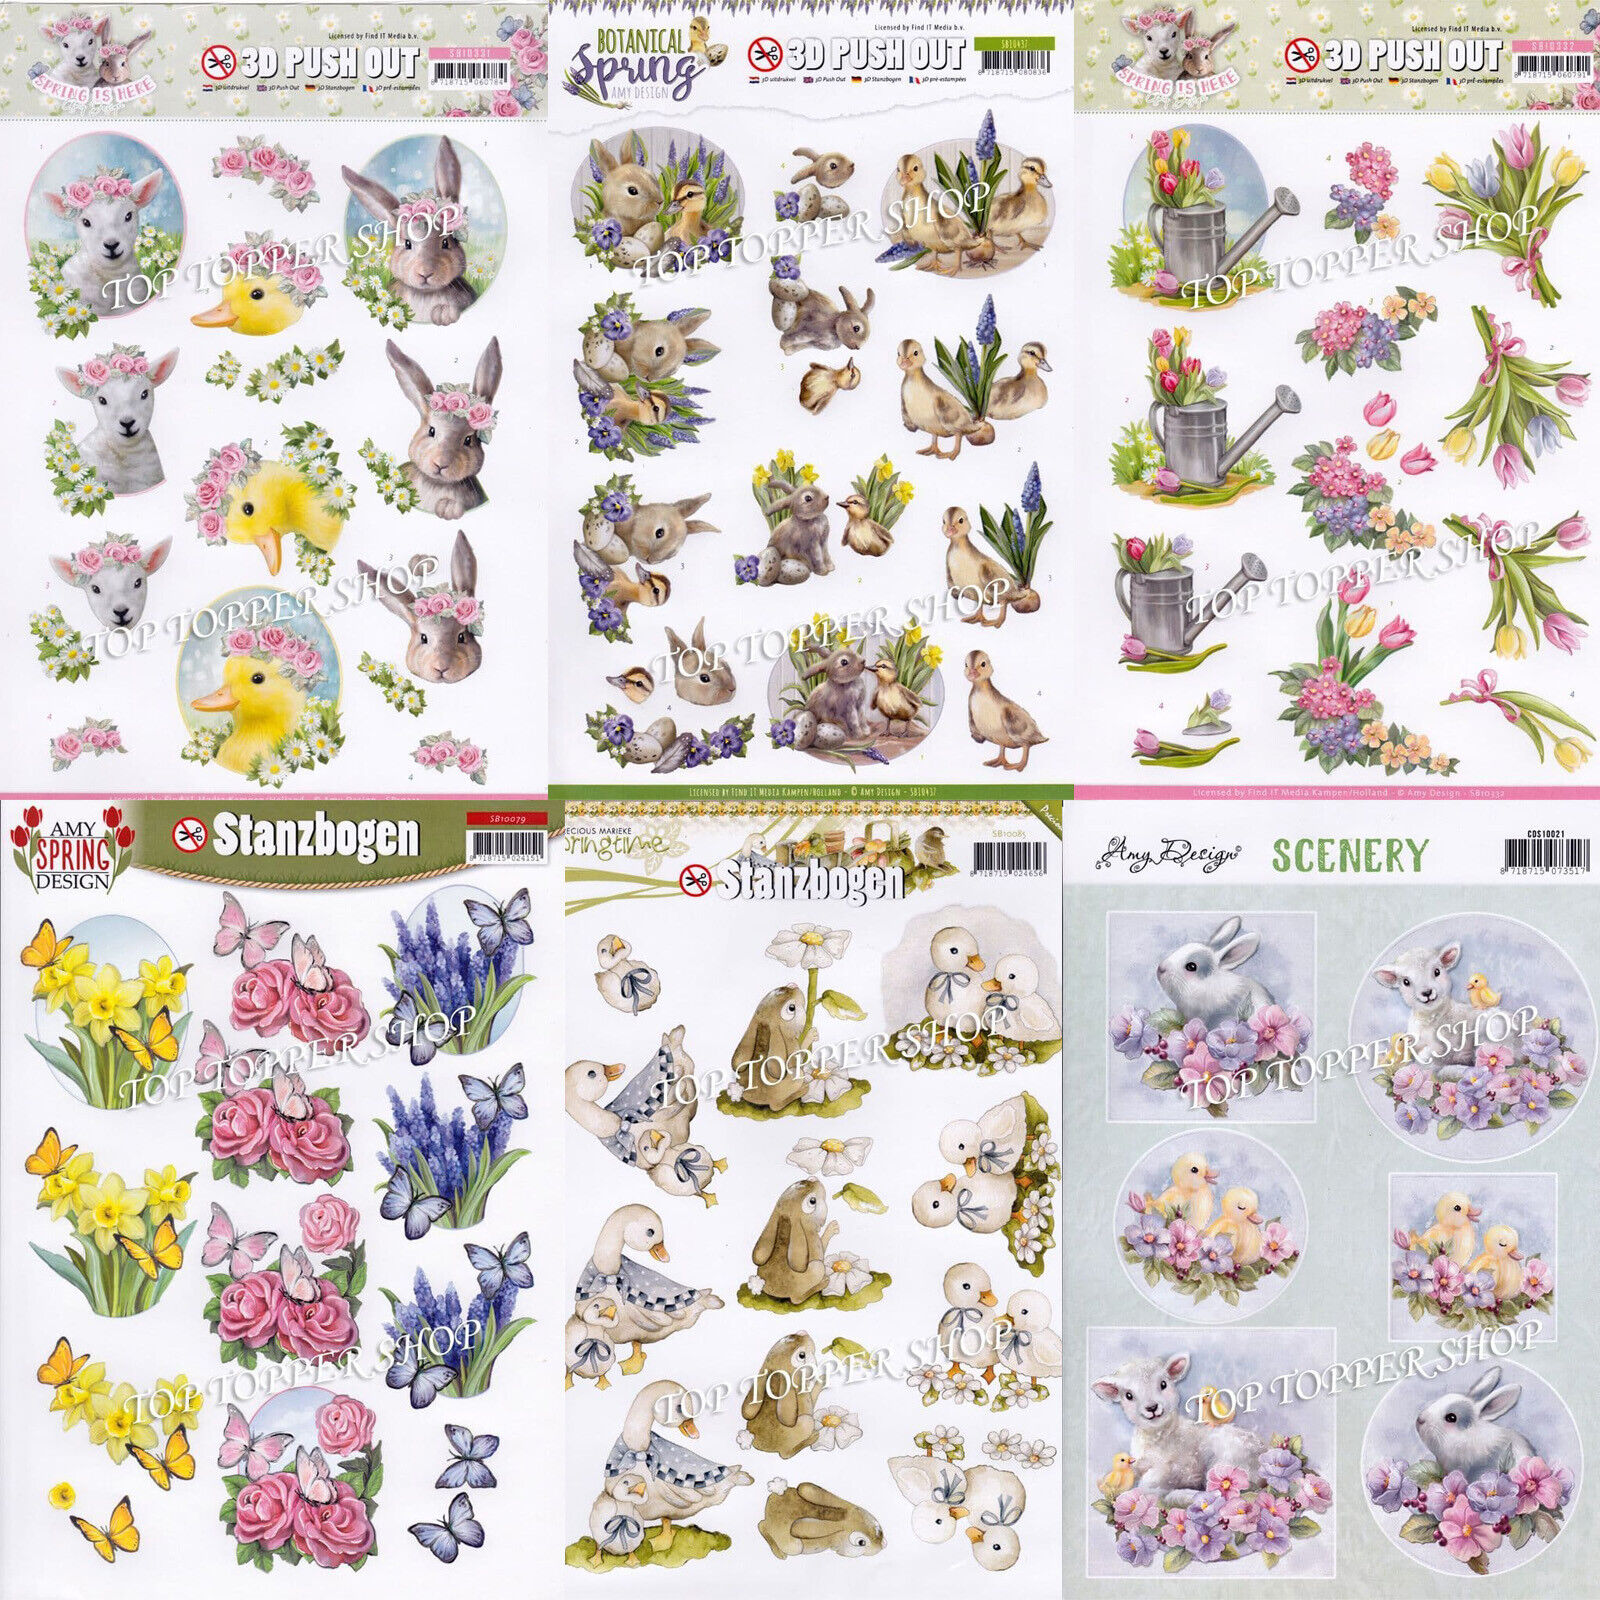 Spring & Easter Themed Die Cut Decoupage Choice of 9 Push Out Sheets